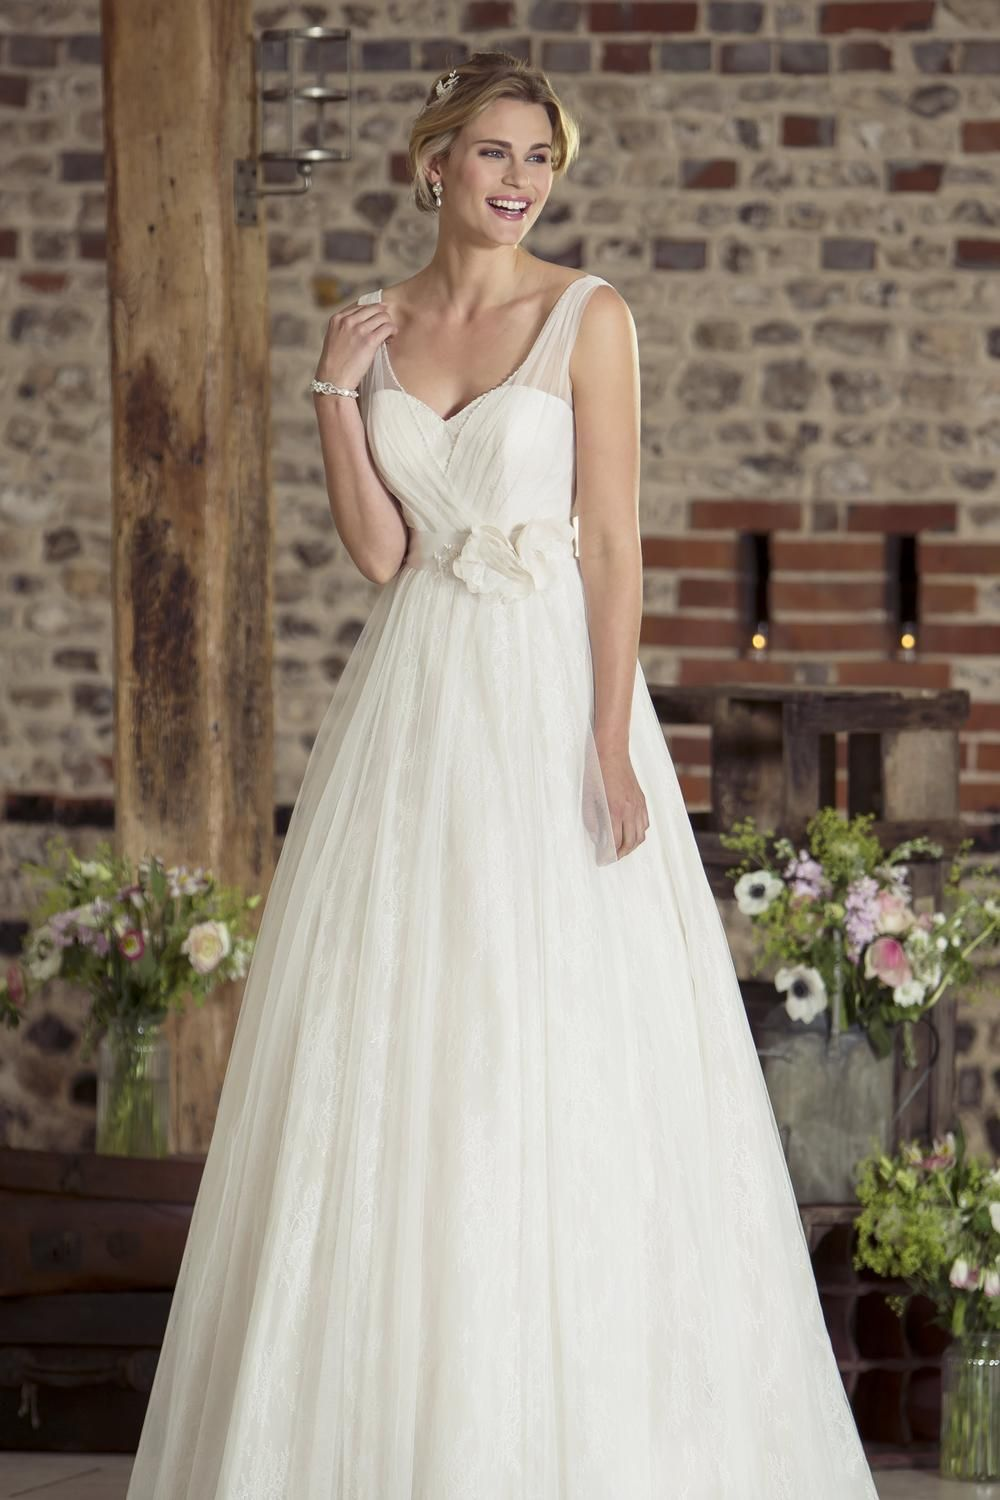 Luna bridesmaids dresses by nicki flynn leonie true bride contemporary wedding dresses and vintage inspired bridal gowns w234 true bride available at ombrellifo Choice Image